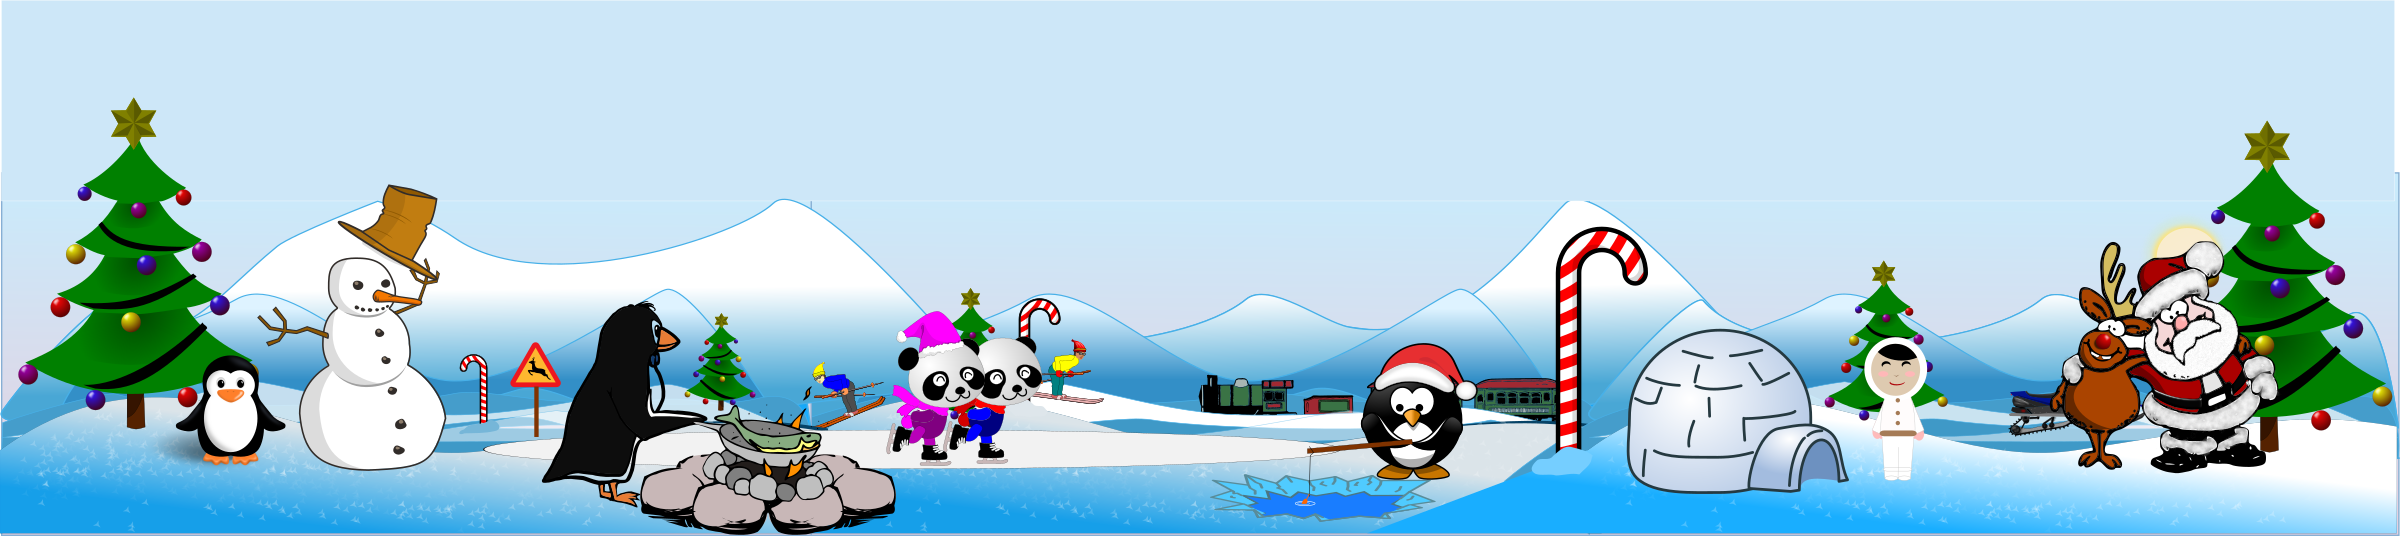 Artic North Pole Scene and Action View by doodler